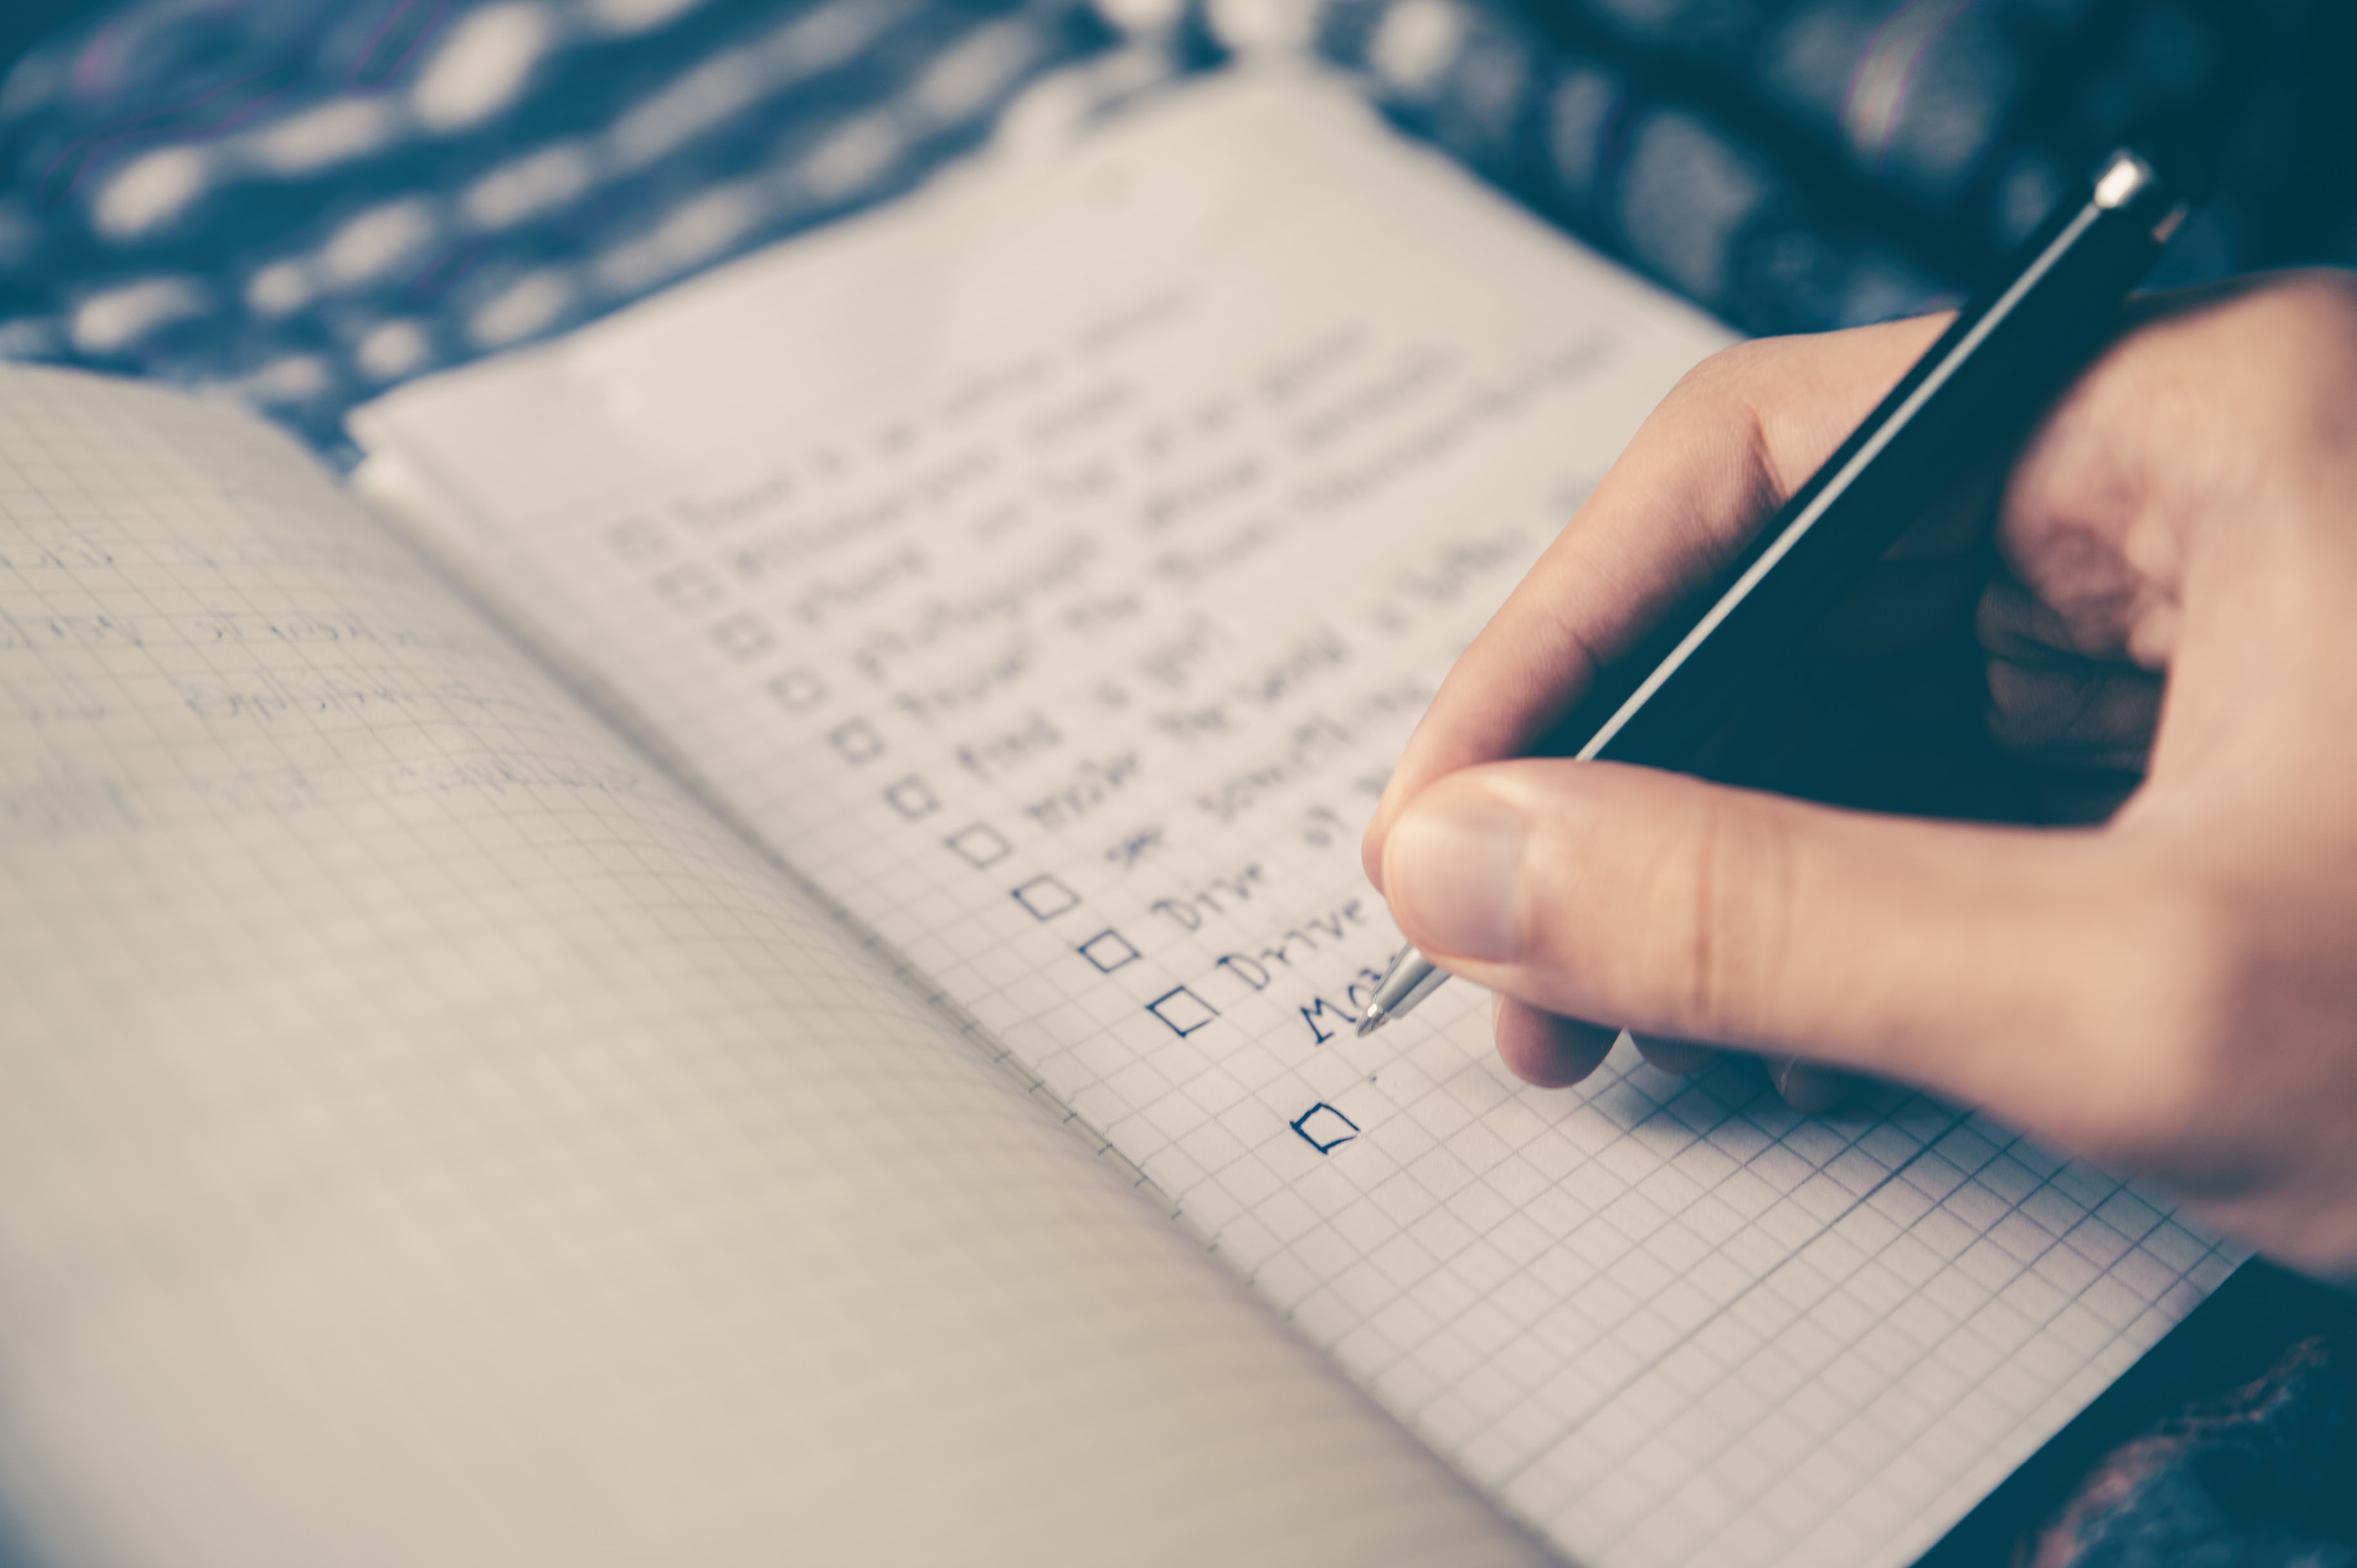 Moving Day Checklists: Why Property Managers & Renters Should Both Use One